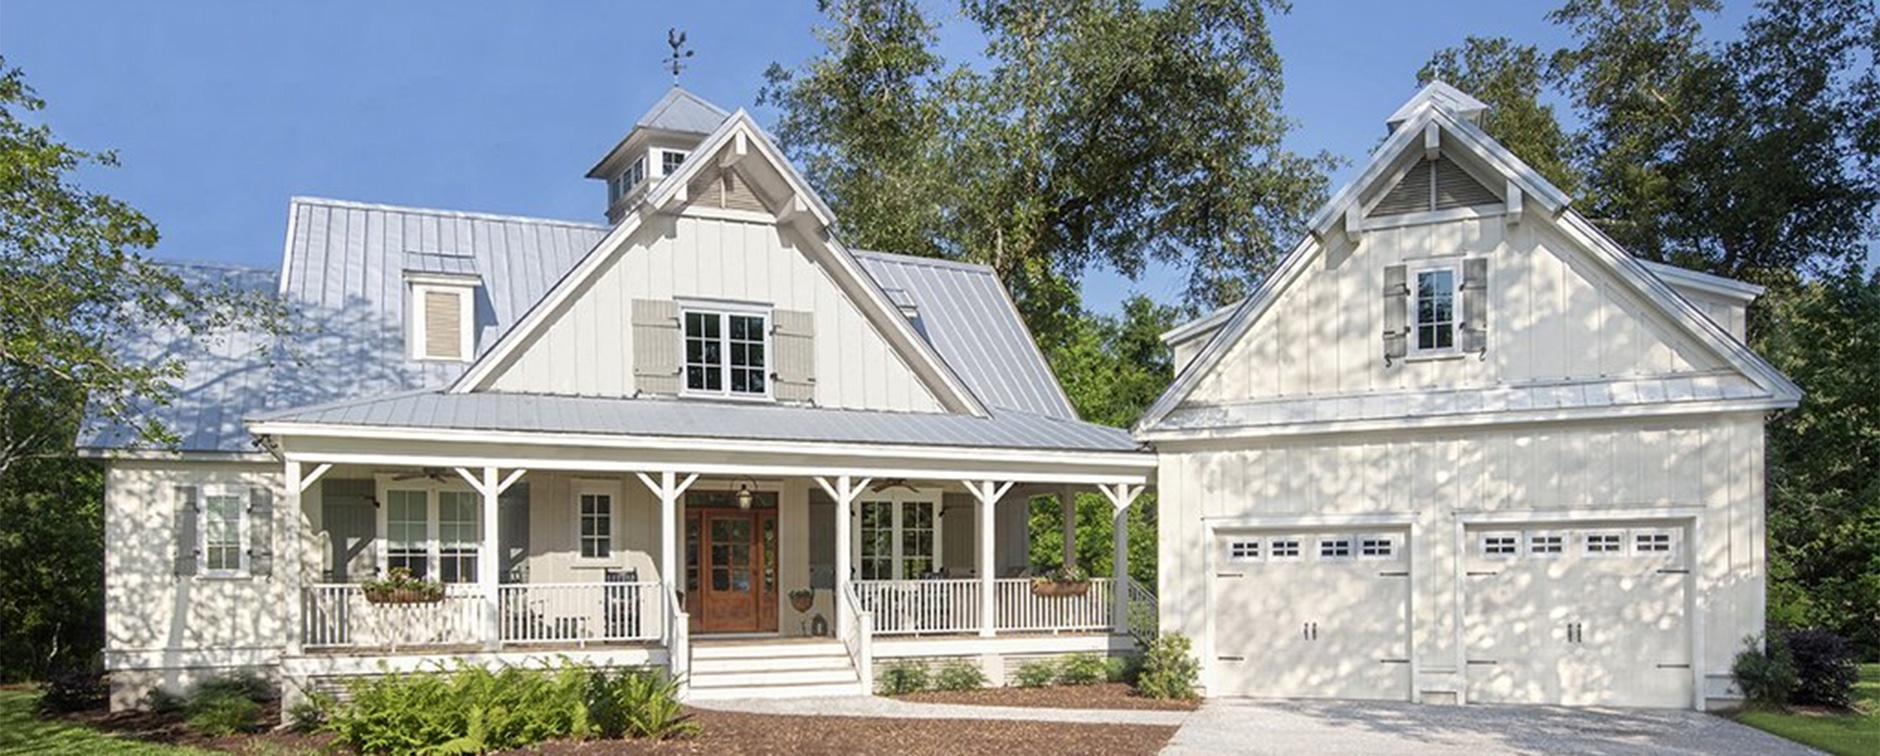 Explore House Plans with Photos